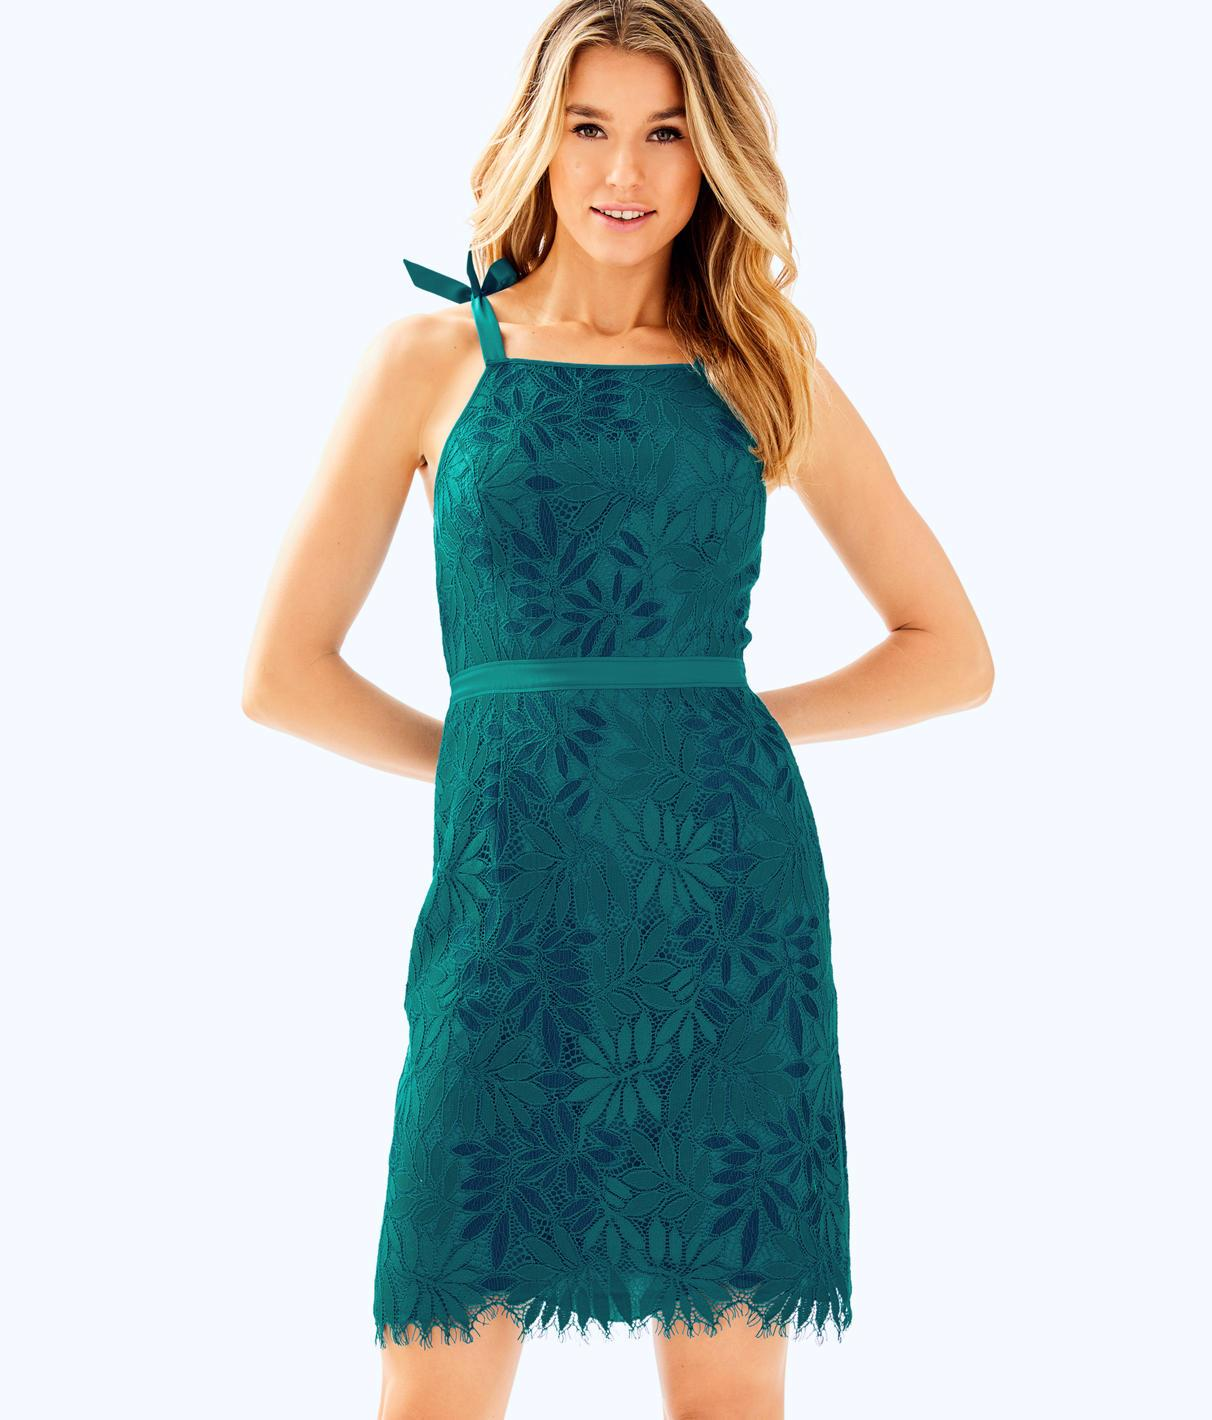 3b78a671d08811 Select Size. Store Status Price. Lilly Pulitzer Kayleigh Lace Sheath Dress  In True Navy Fern Gallery Lace